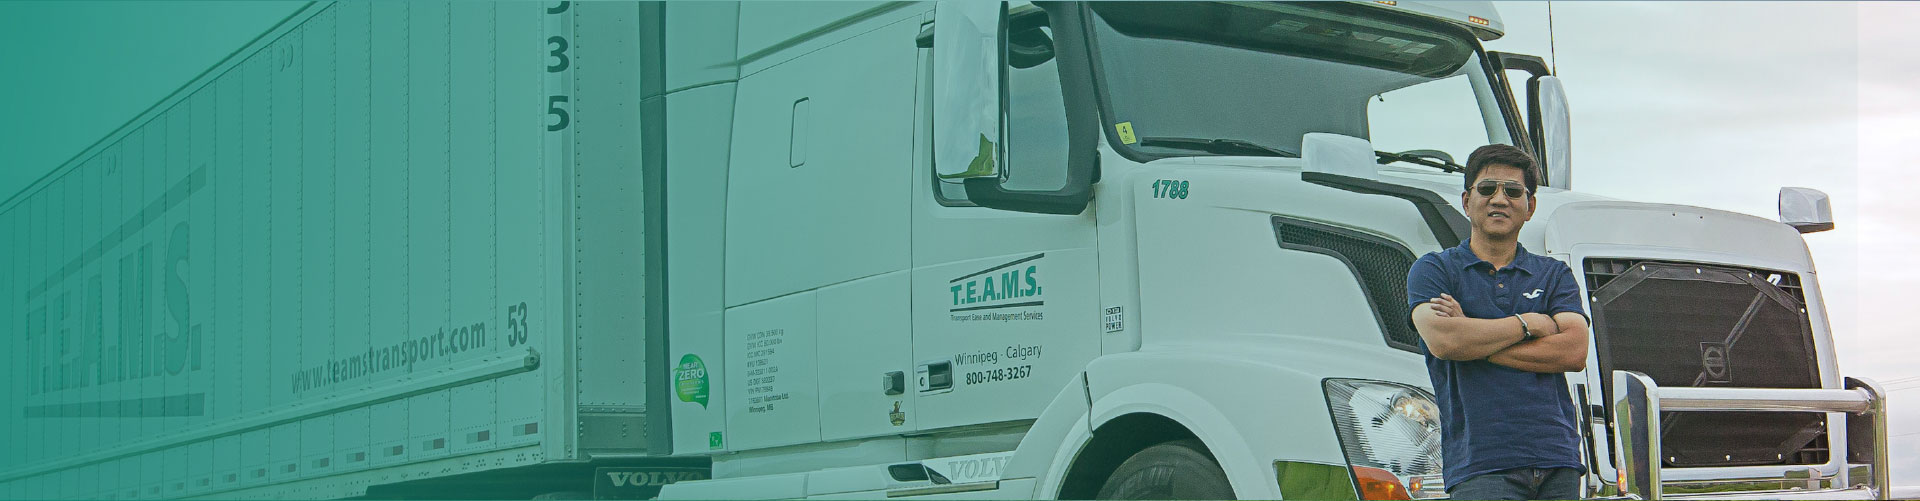 Careers - Truck Drivers - Owner Operators | T E A M S Transport